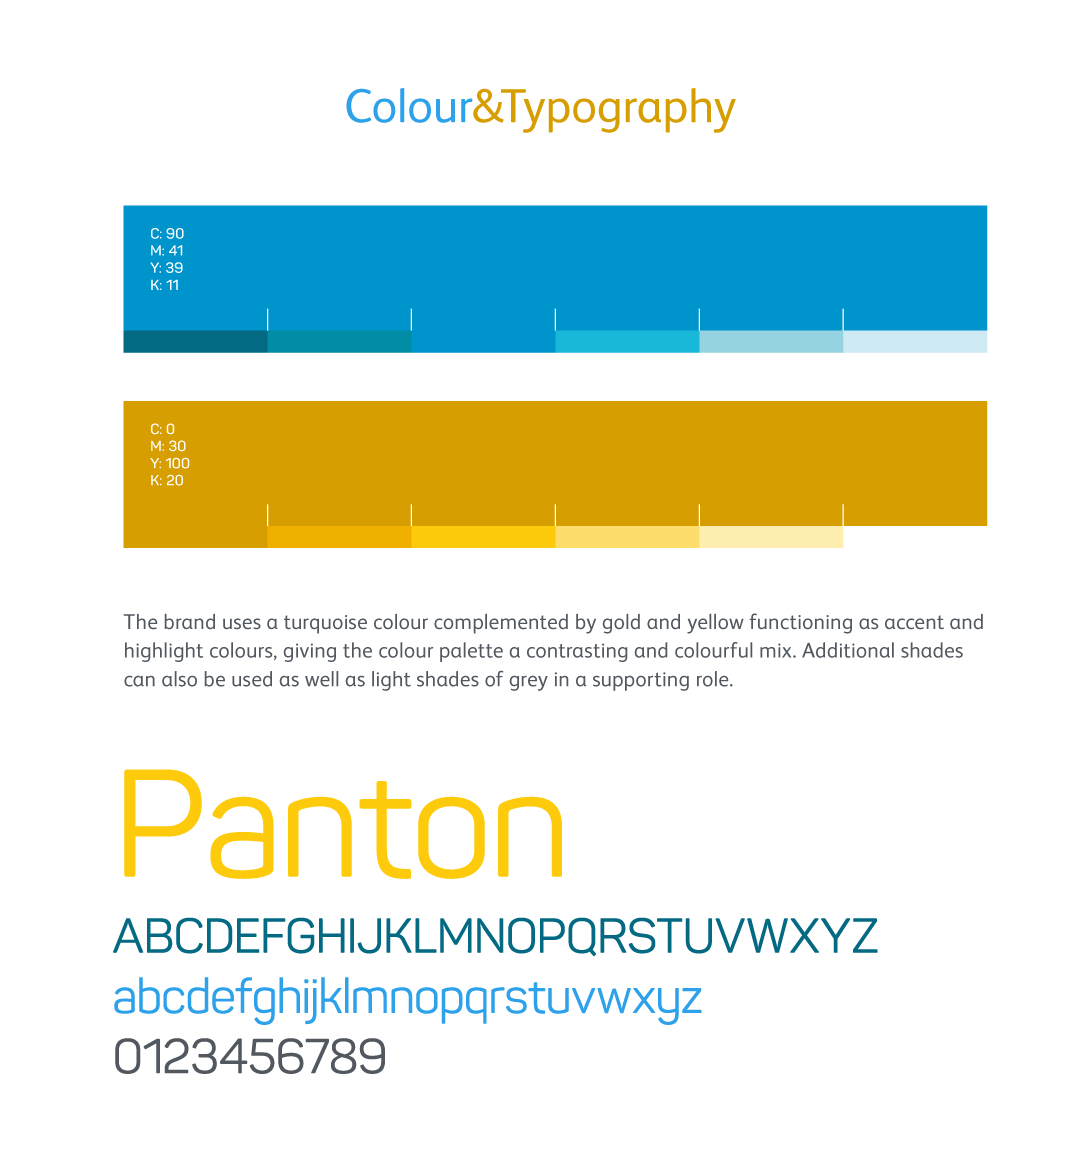 Colour and typography